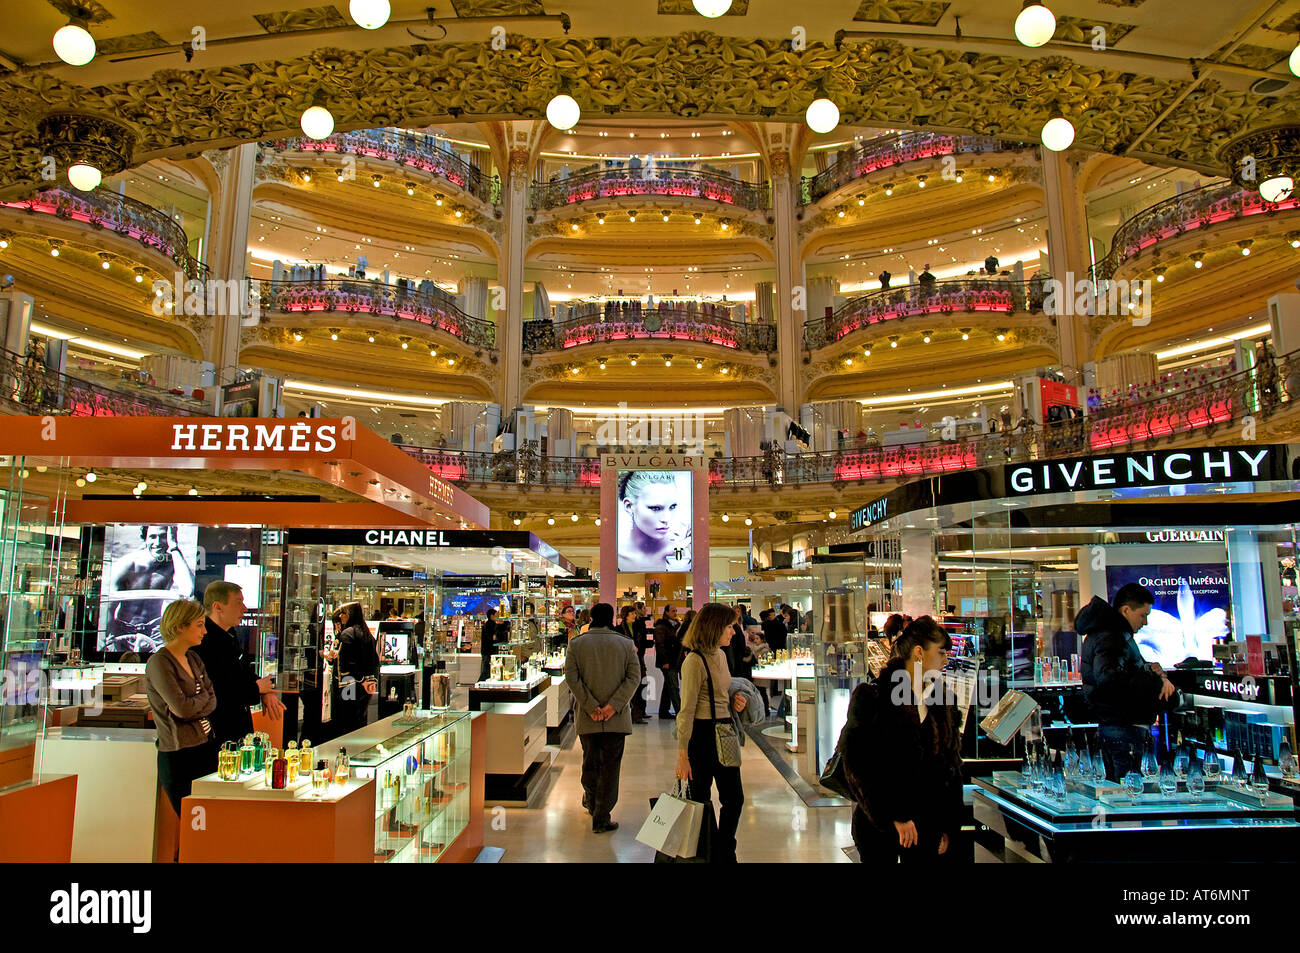 Galeries Lafayette Paris Hermes Givenchy Chanel Bvlgari Stock Photo ... 8df3082adb0